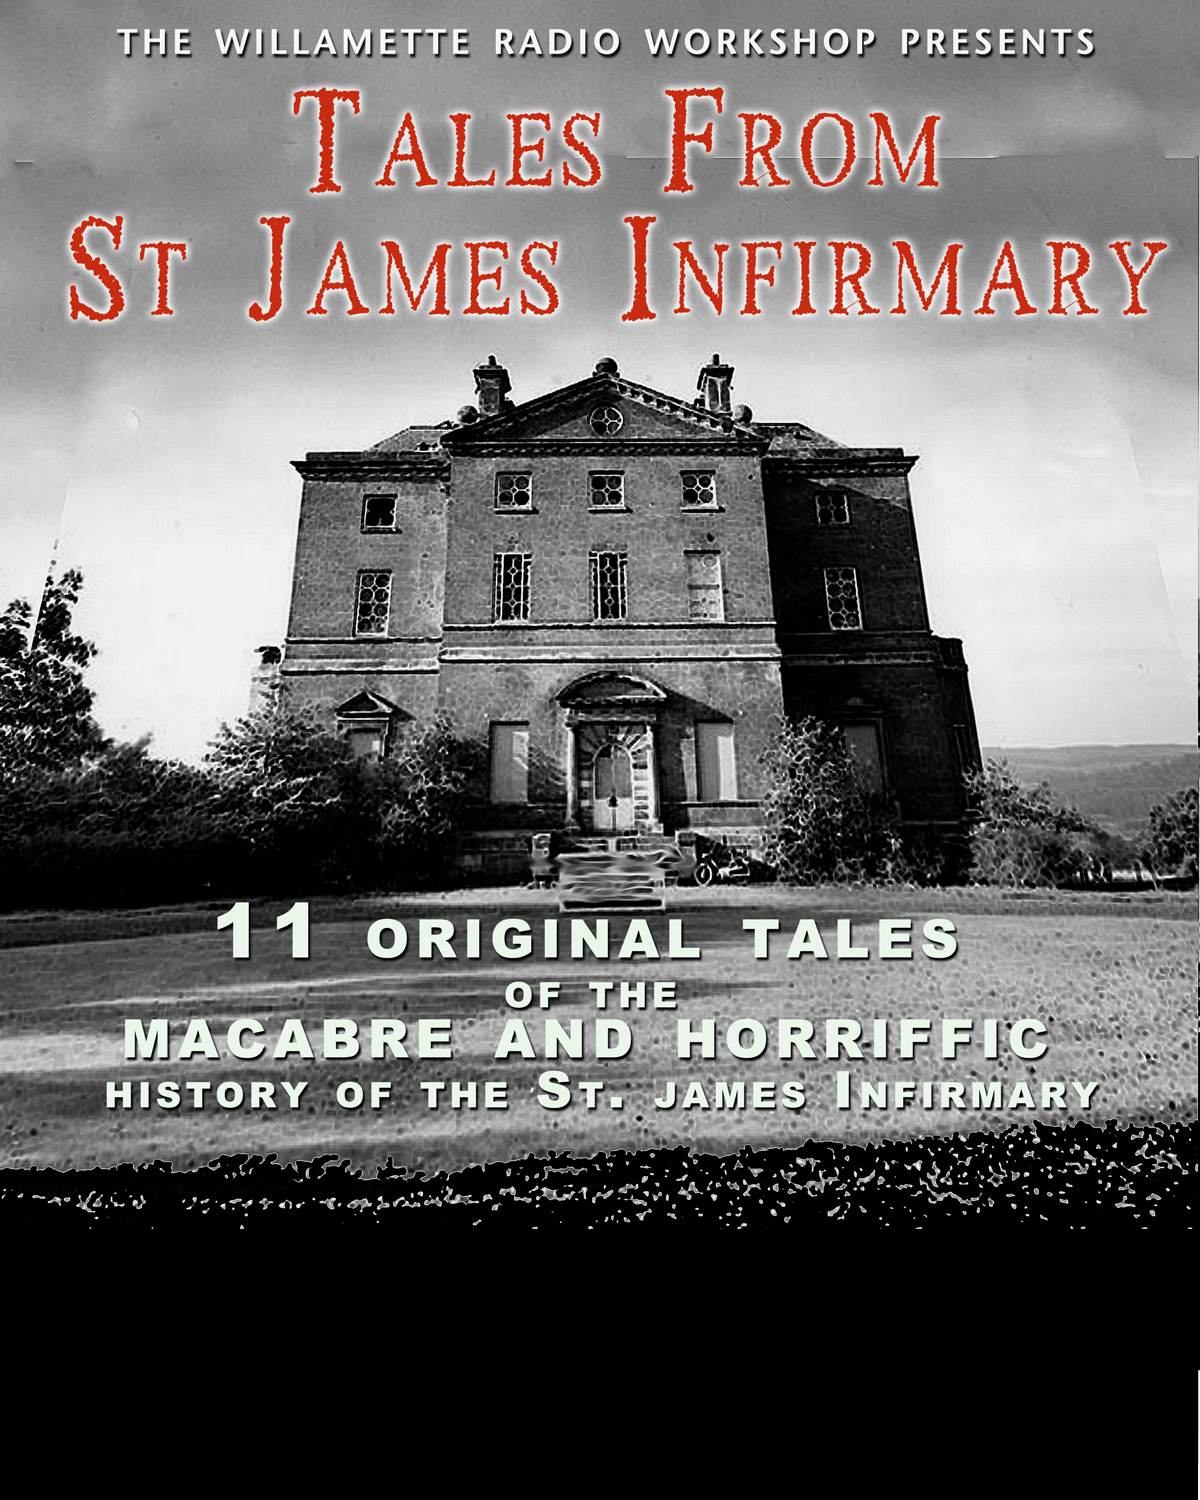 St. James Infirmary, October 2012